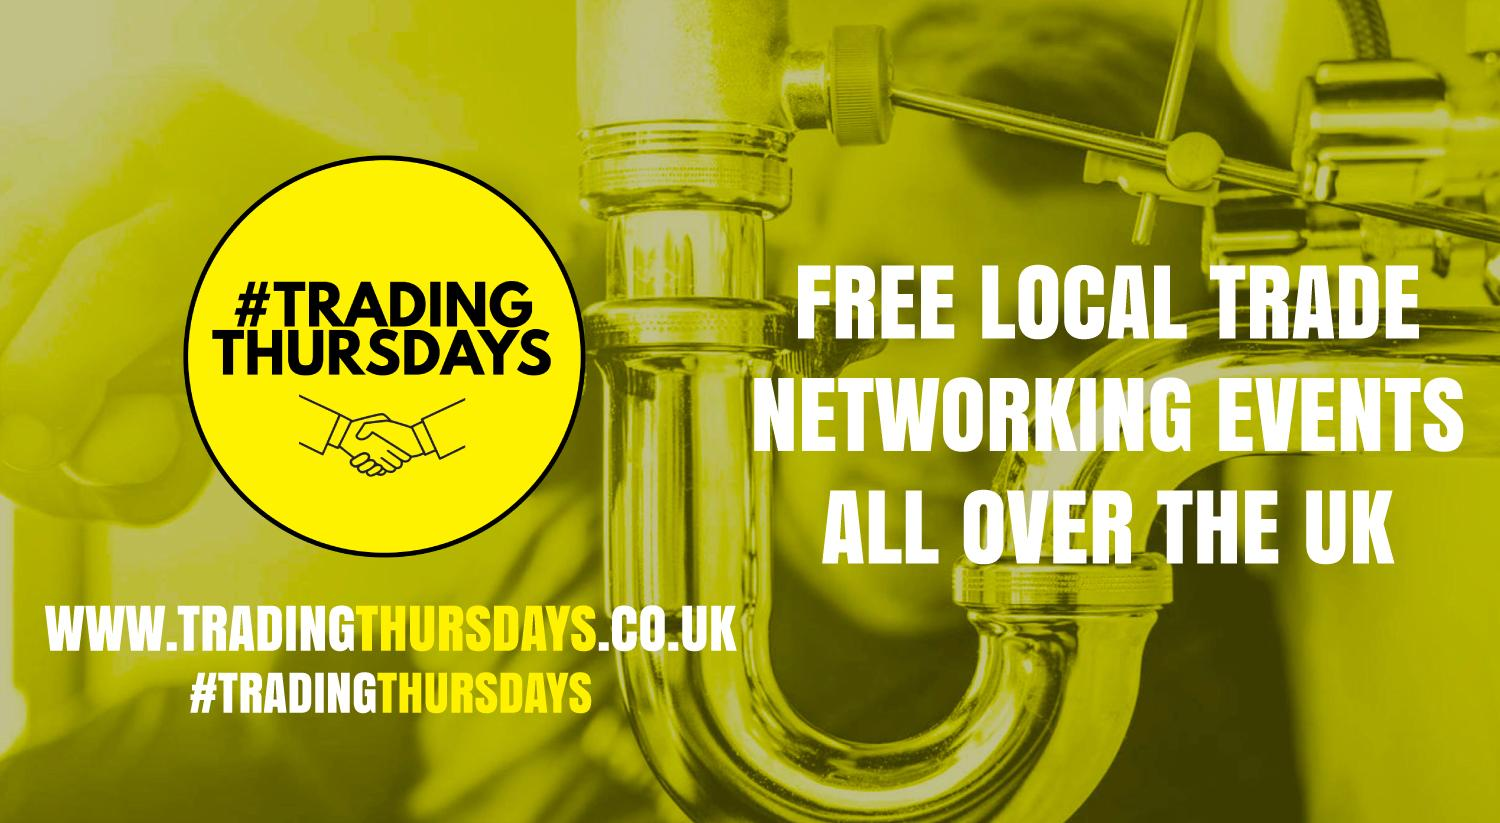 Trading Thursdays! Free networking event for traders in York